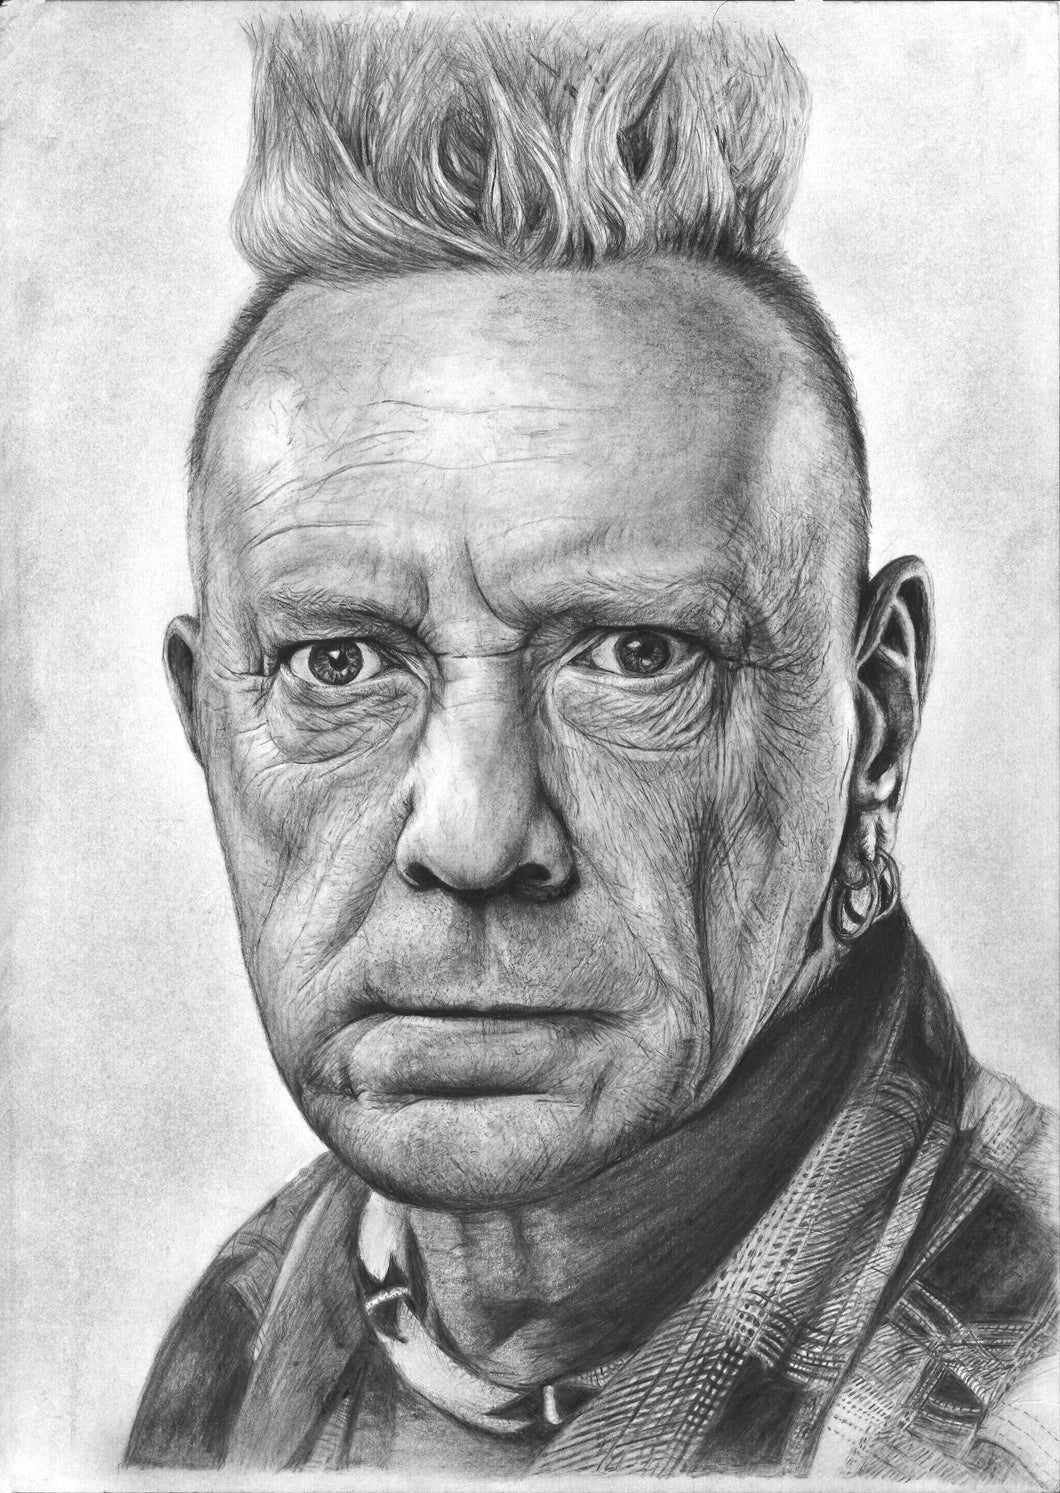 John Lydon aka Johnny Rotten of Sex Pistols and P.I.L charcoal portrait drawing print wall decor